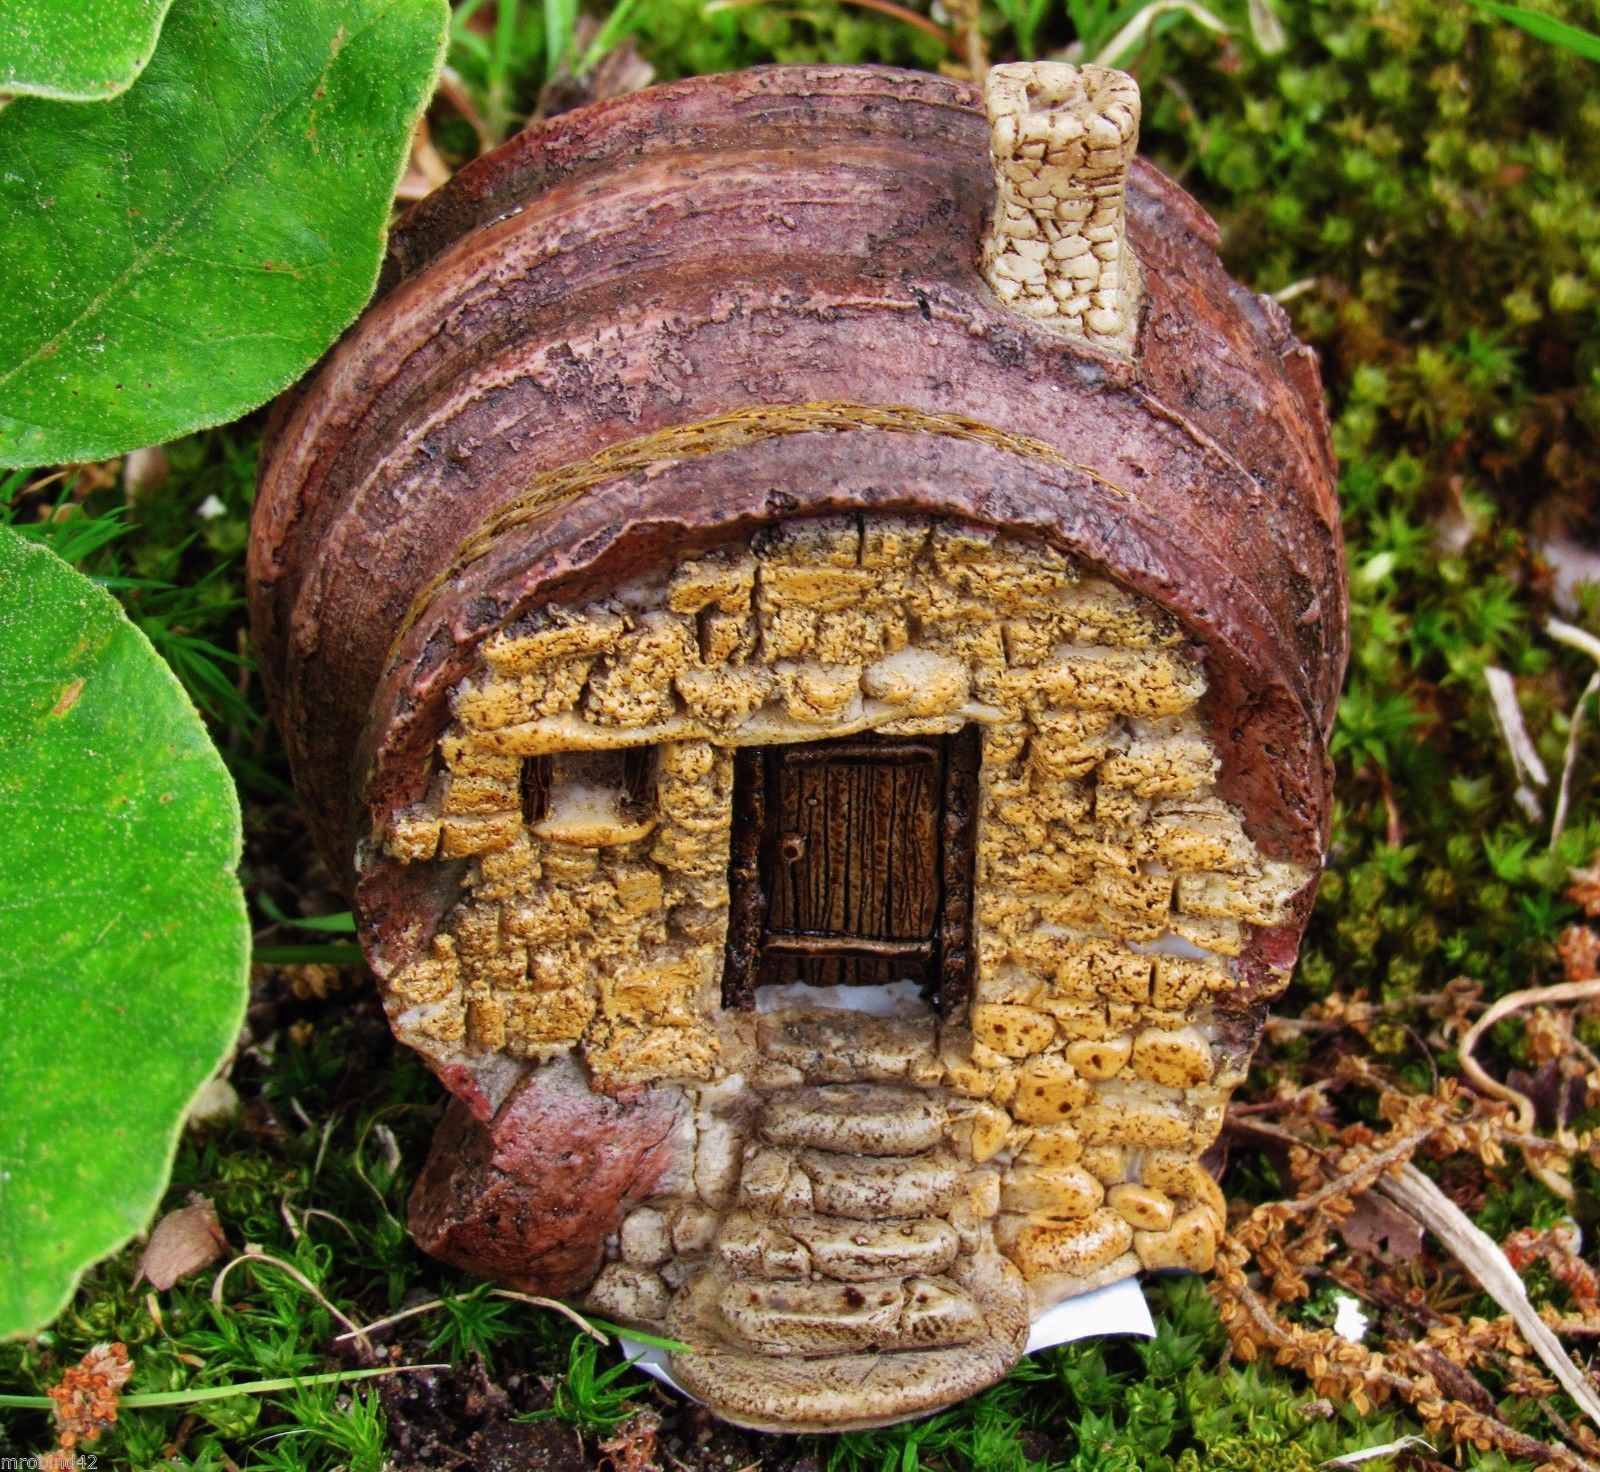 Wondrous Miniature Fairy Garden Micro Mini Fairy Gnome Snail Shell House Miniature Fairy Garden Micro Mini Fairy Gnome Snail Shell House Micro Mini Fairy Garden Accessories Micro Miniature Fairy Garde